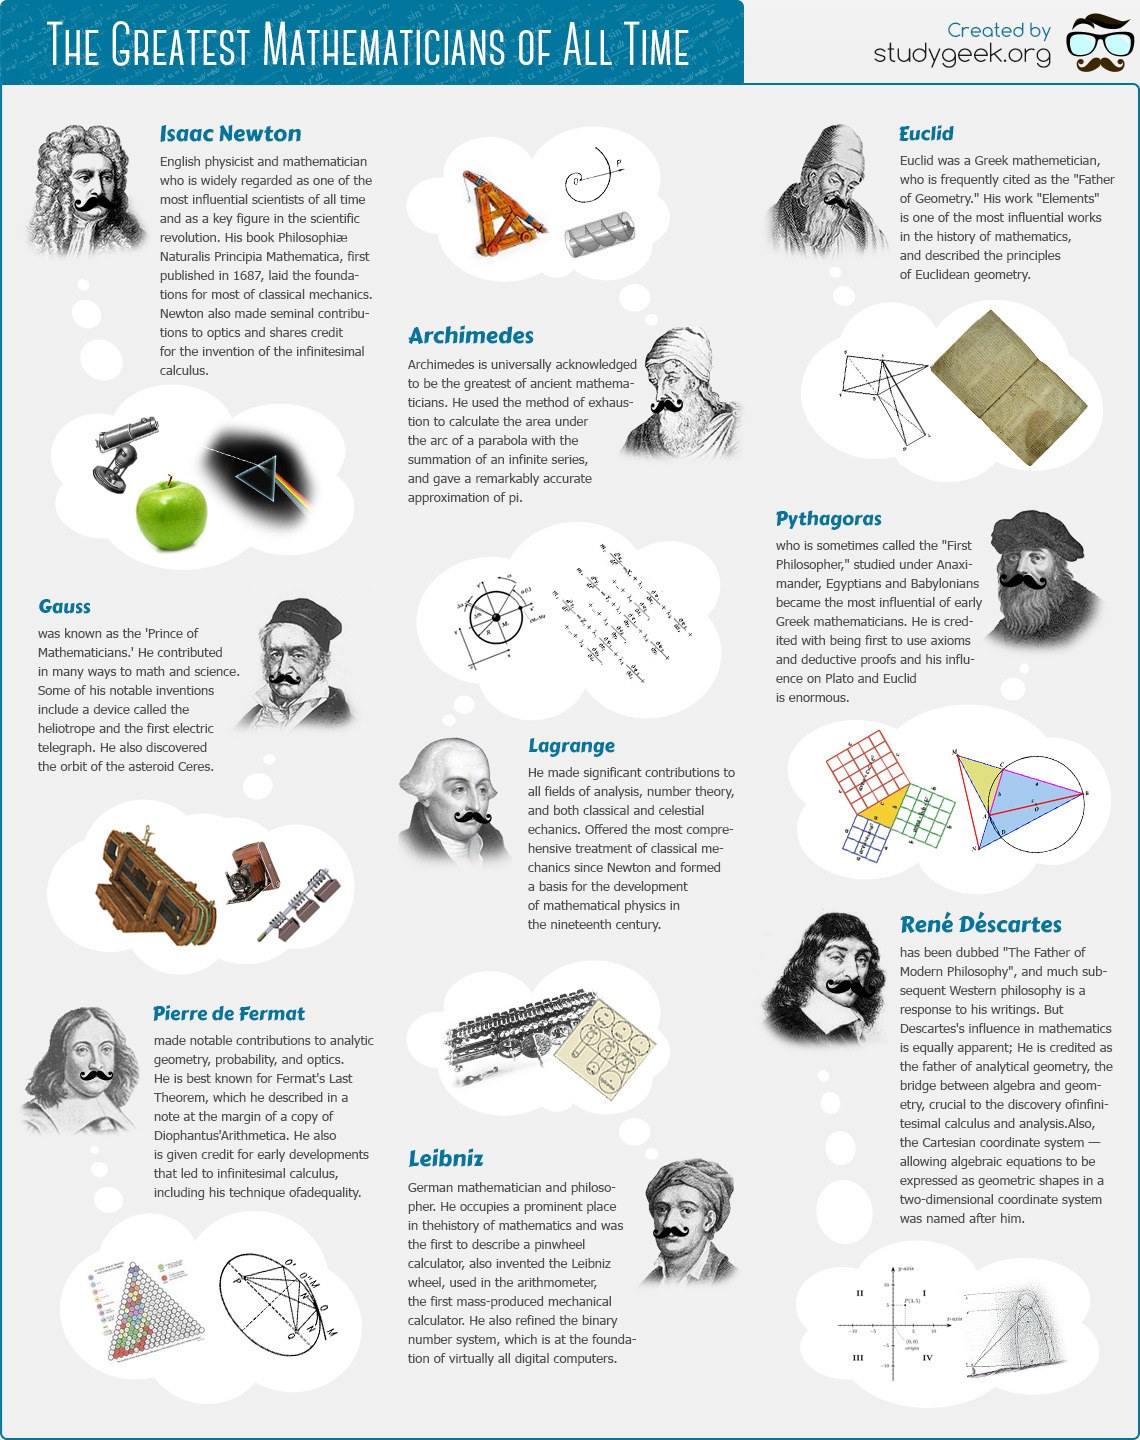 The Greatest Mathematicians Infographic